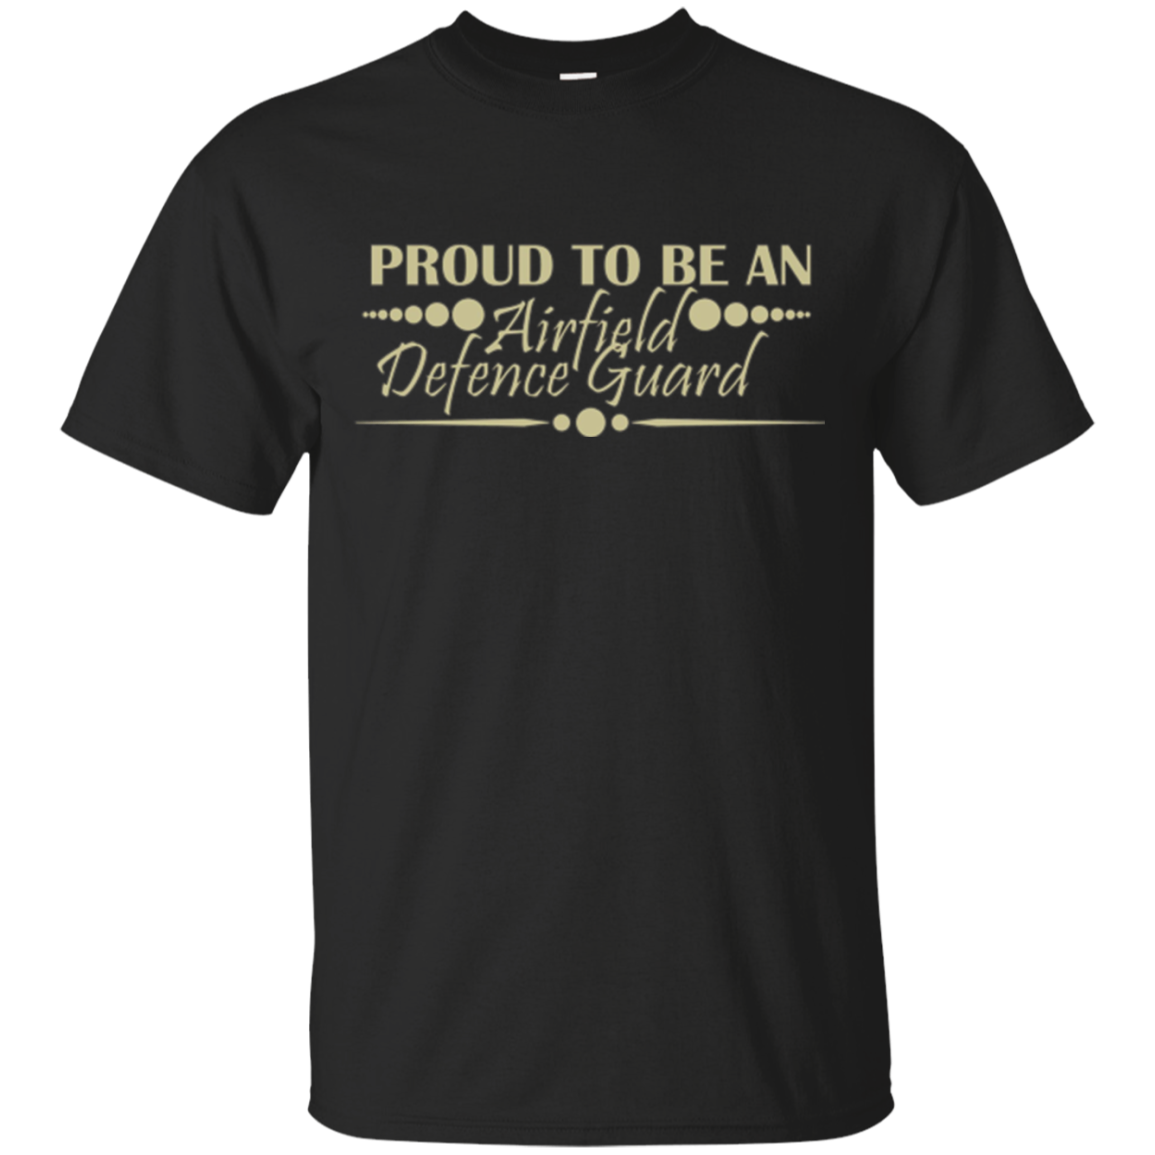 Airfield Defence Guard T-shirt - Proud To Be An Airfield